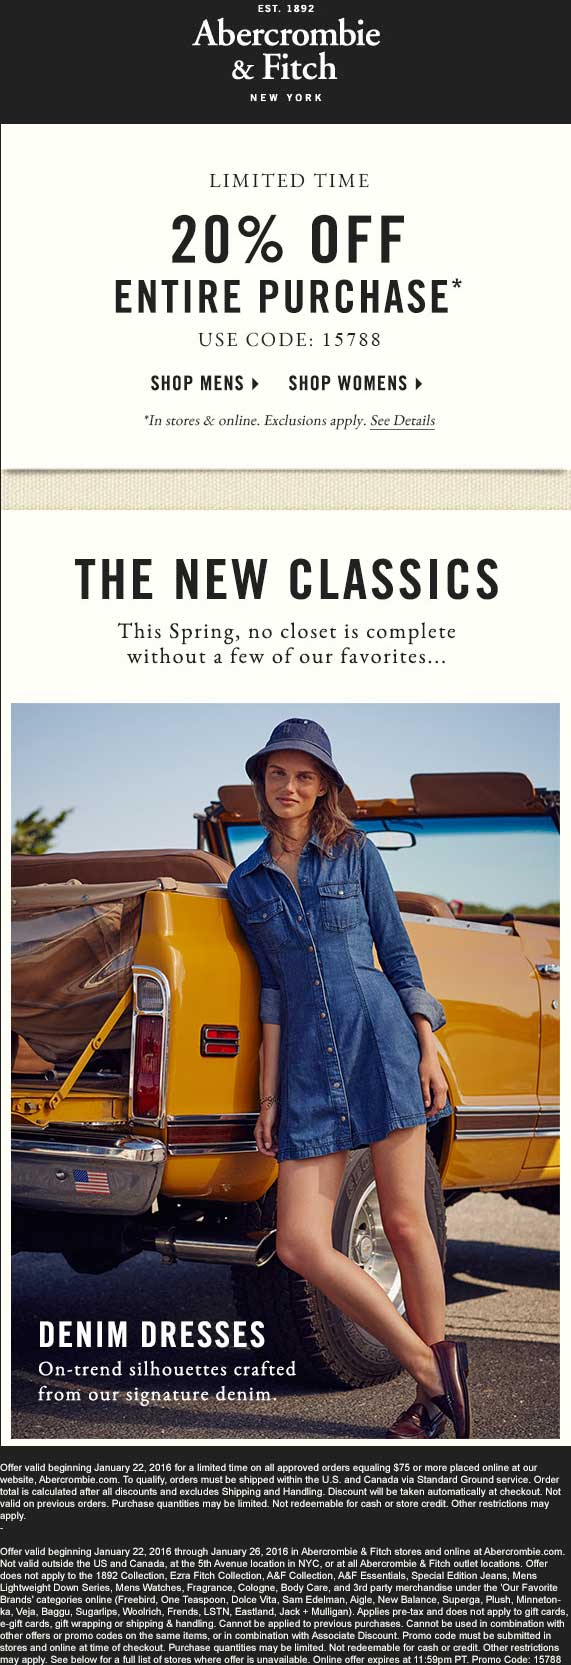 Abercrombie & Fitch Coupon March 2018 20% off at Abercrombie & Fitch, or online via promo code 15788